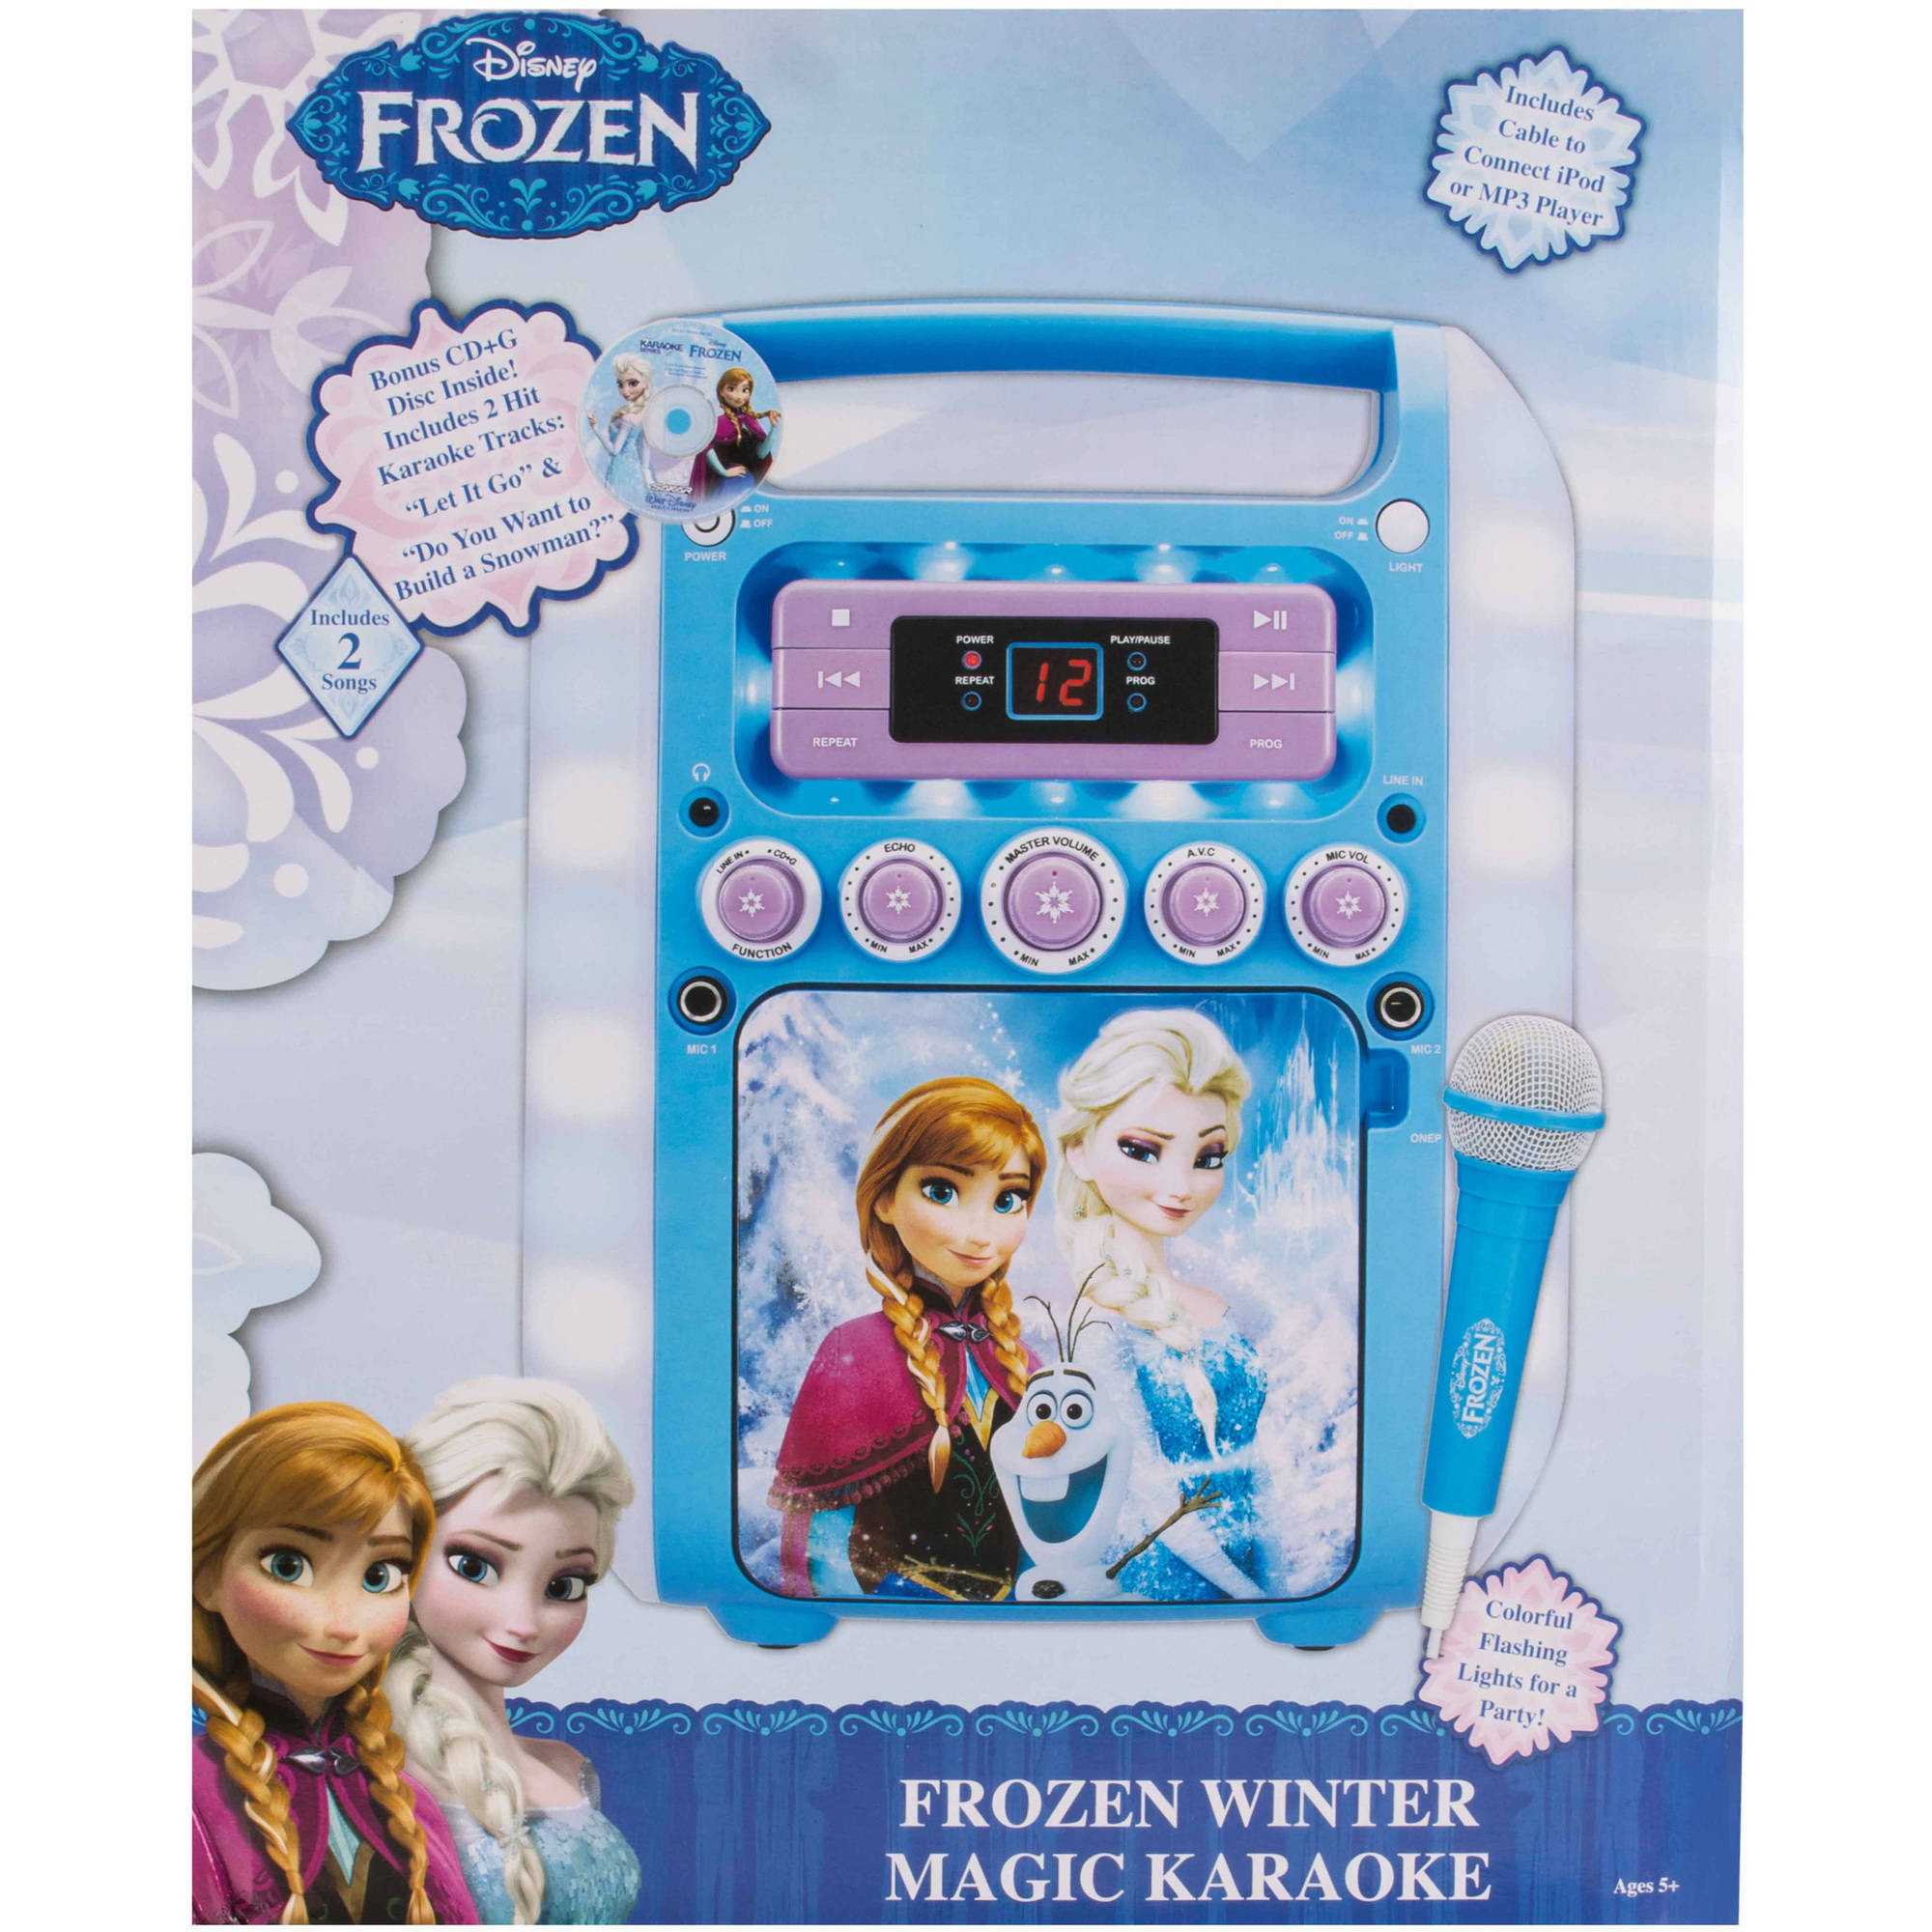 Disney Frozen KO2-07027-WINT Frozen Winter Magic Karaoke - Walmart.com 4b23ed4585d7